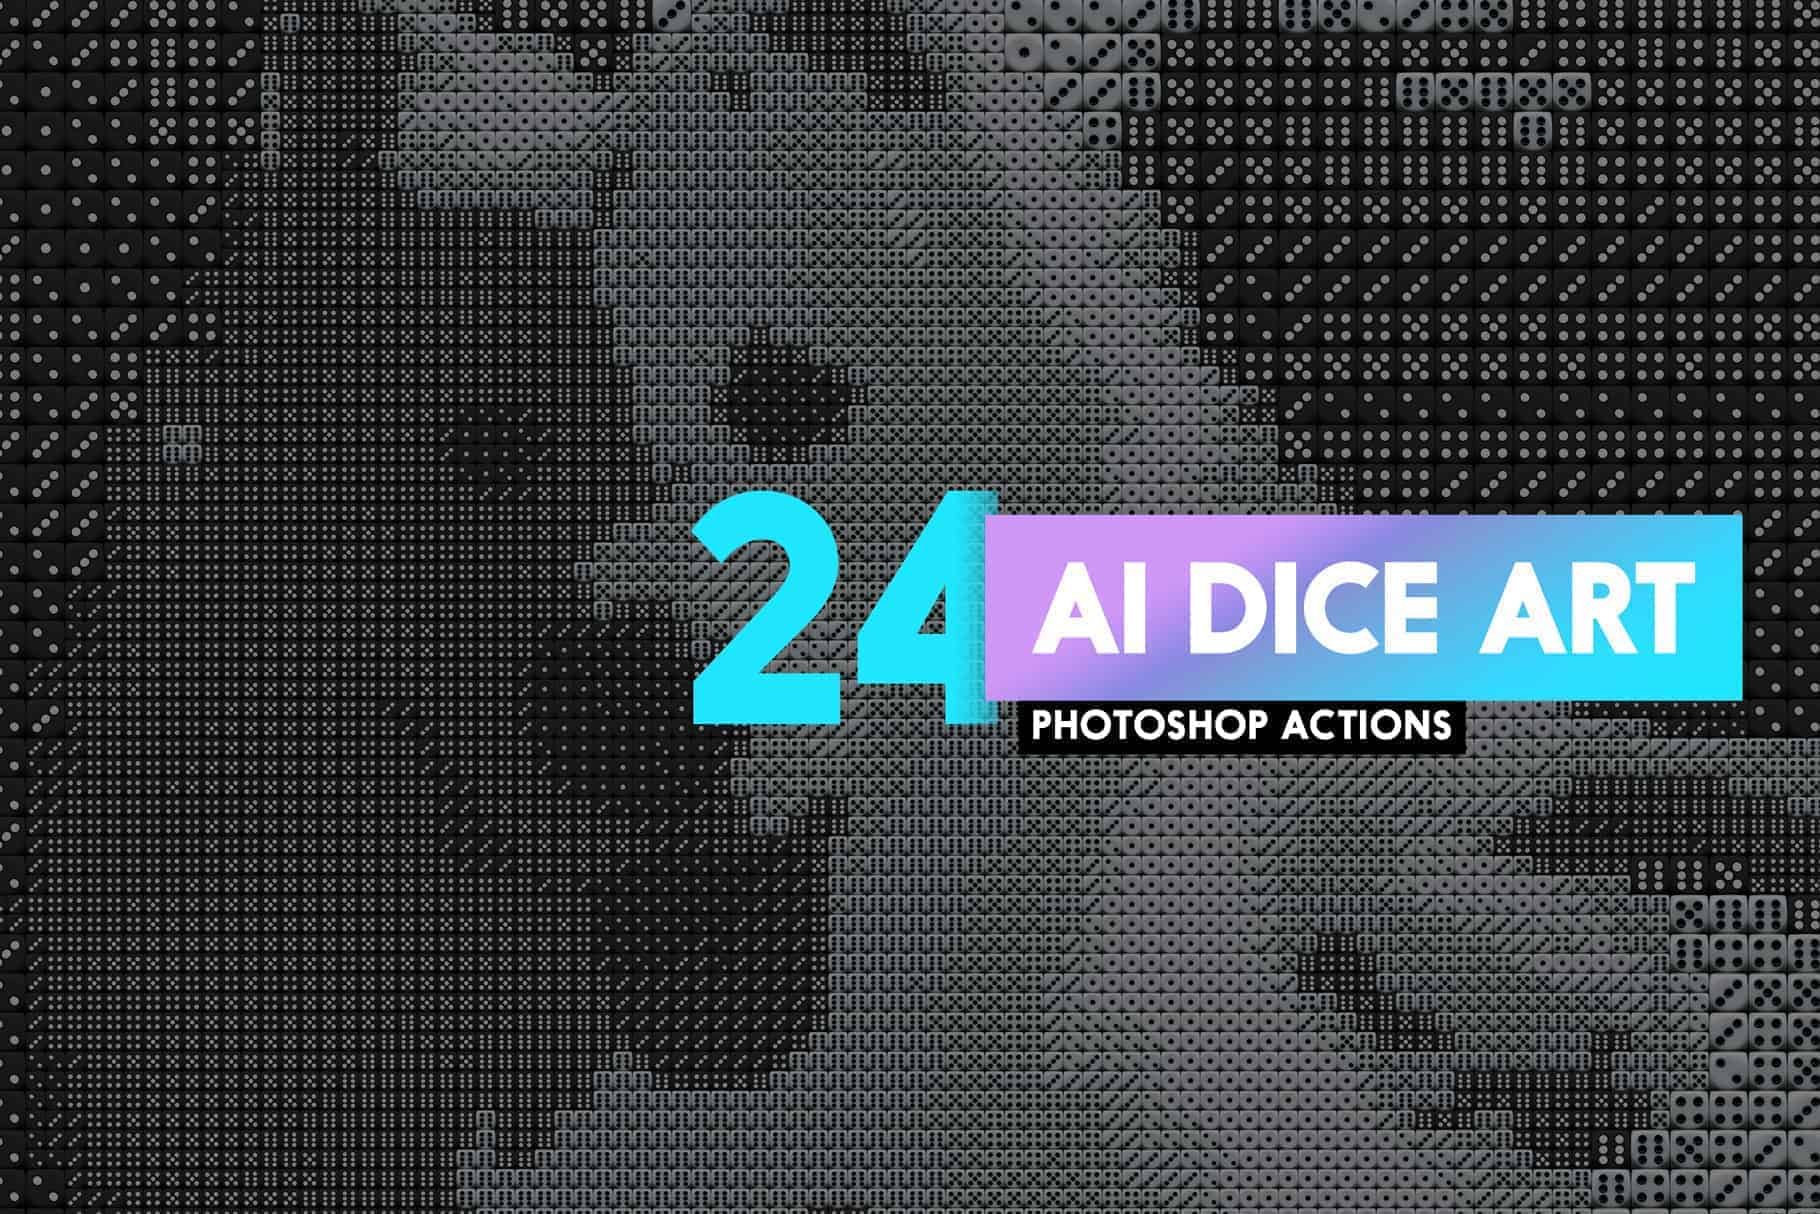 Create Art Made From Thousands of Dice with 4 Free Photoshop Actions